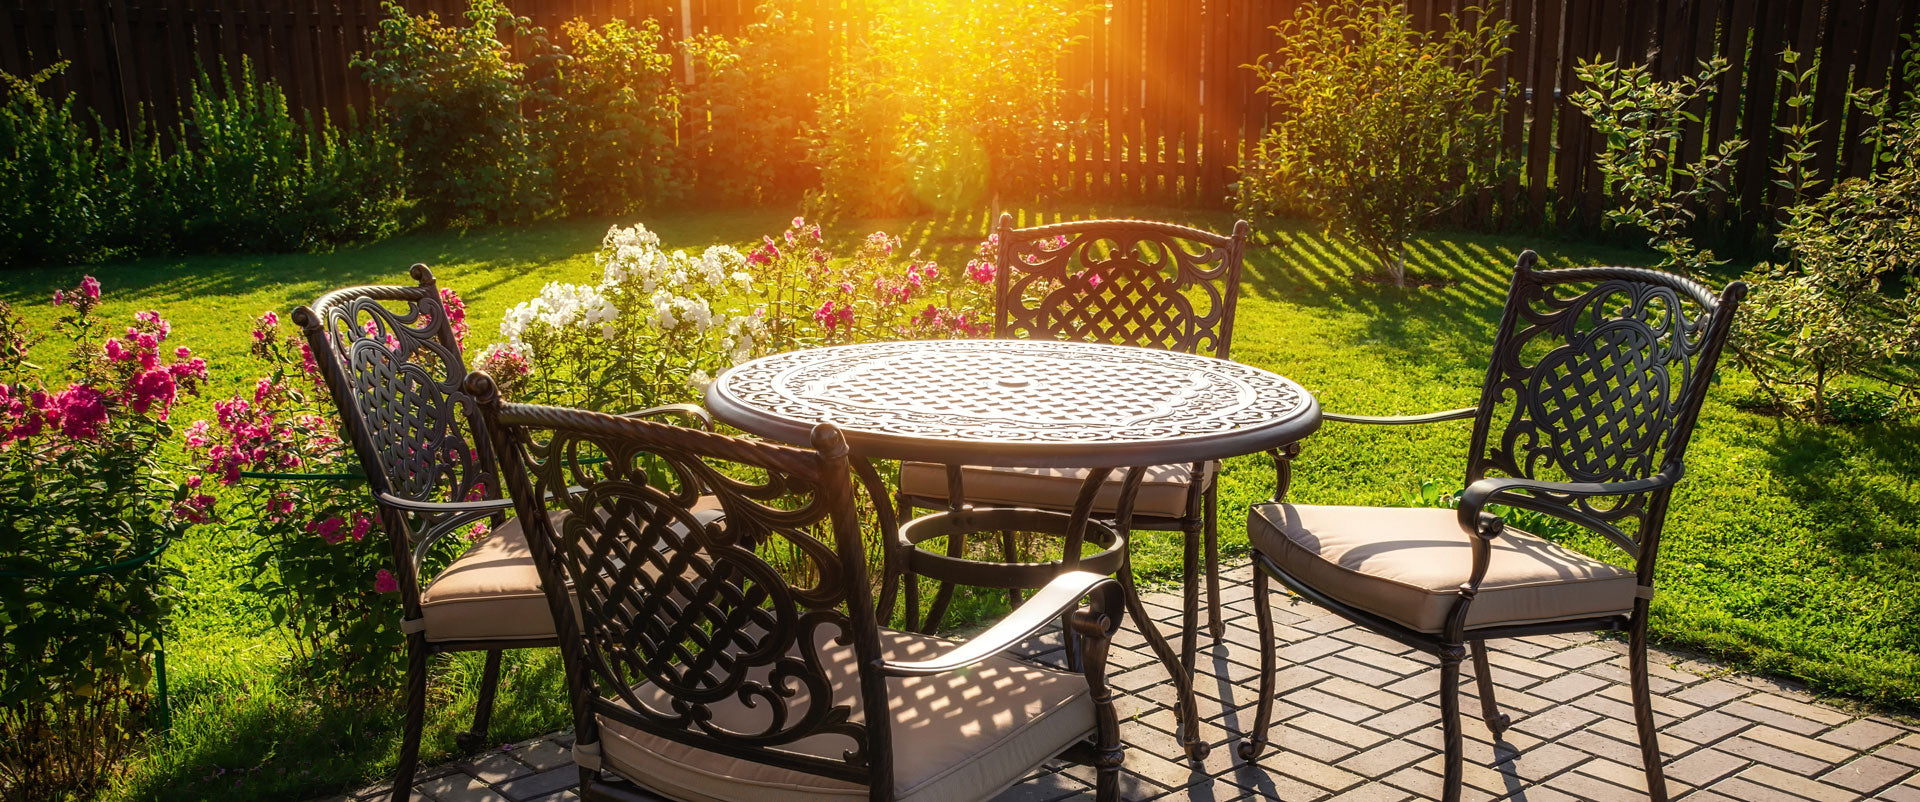 Revive Your Patio Furniture with AL-NEW Aluminum Restoration for Summer!